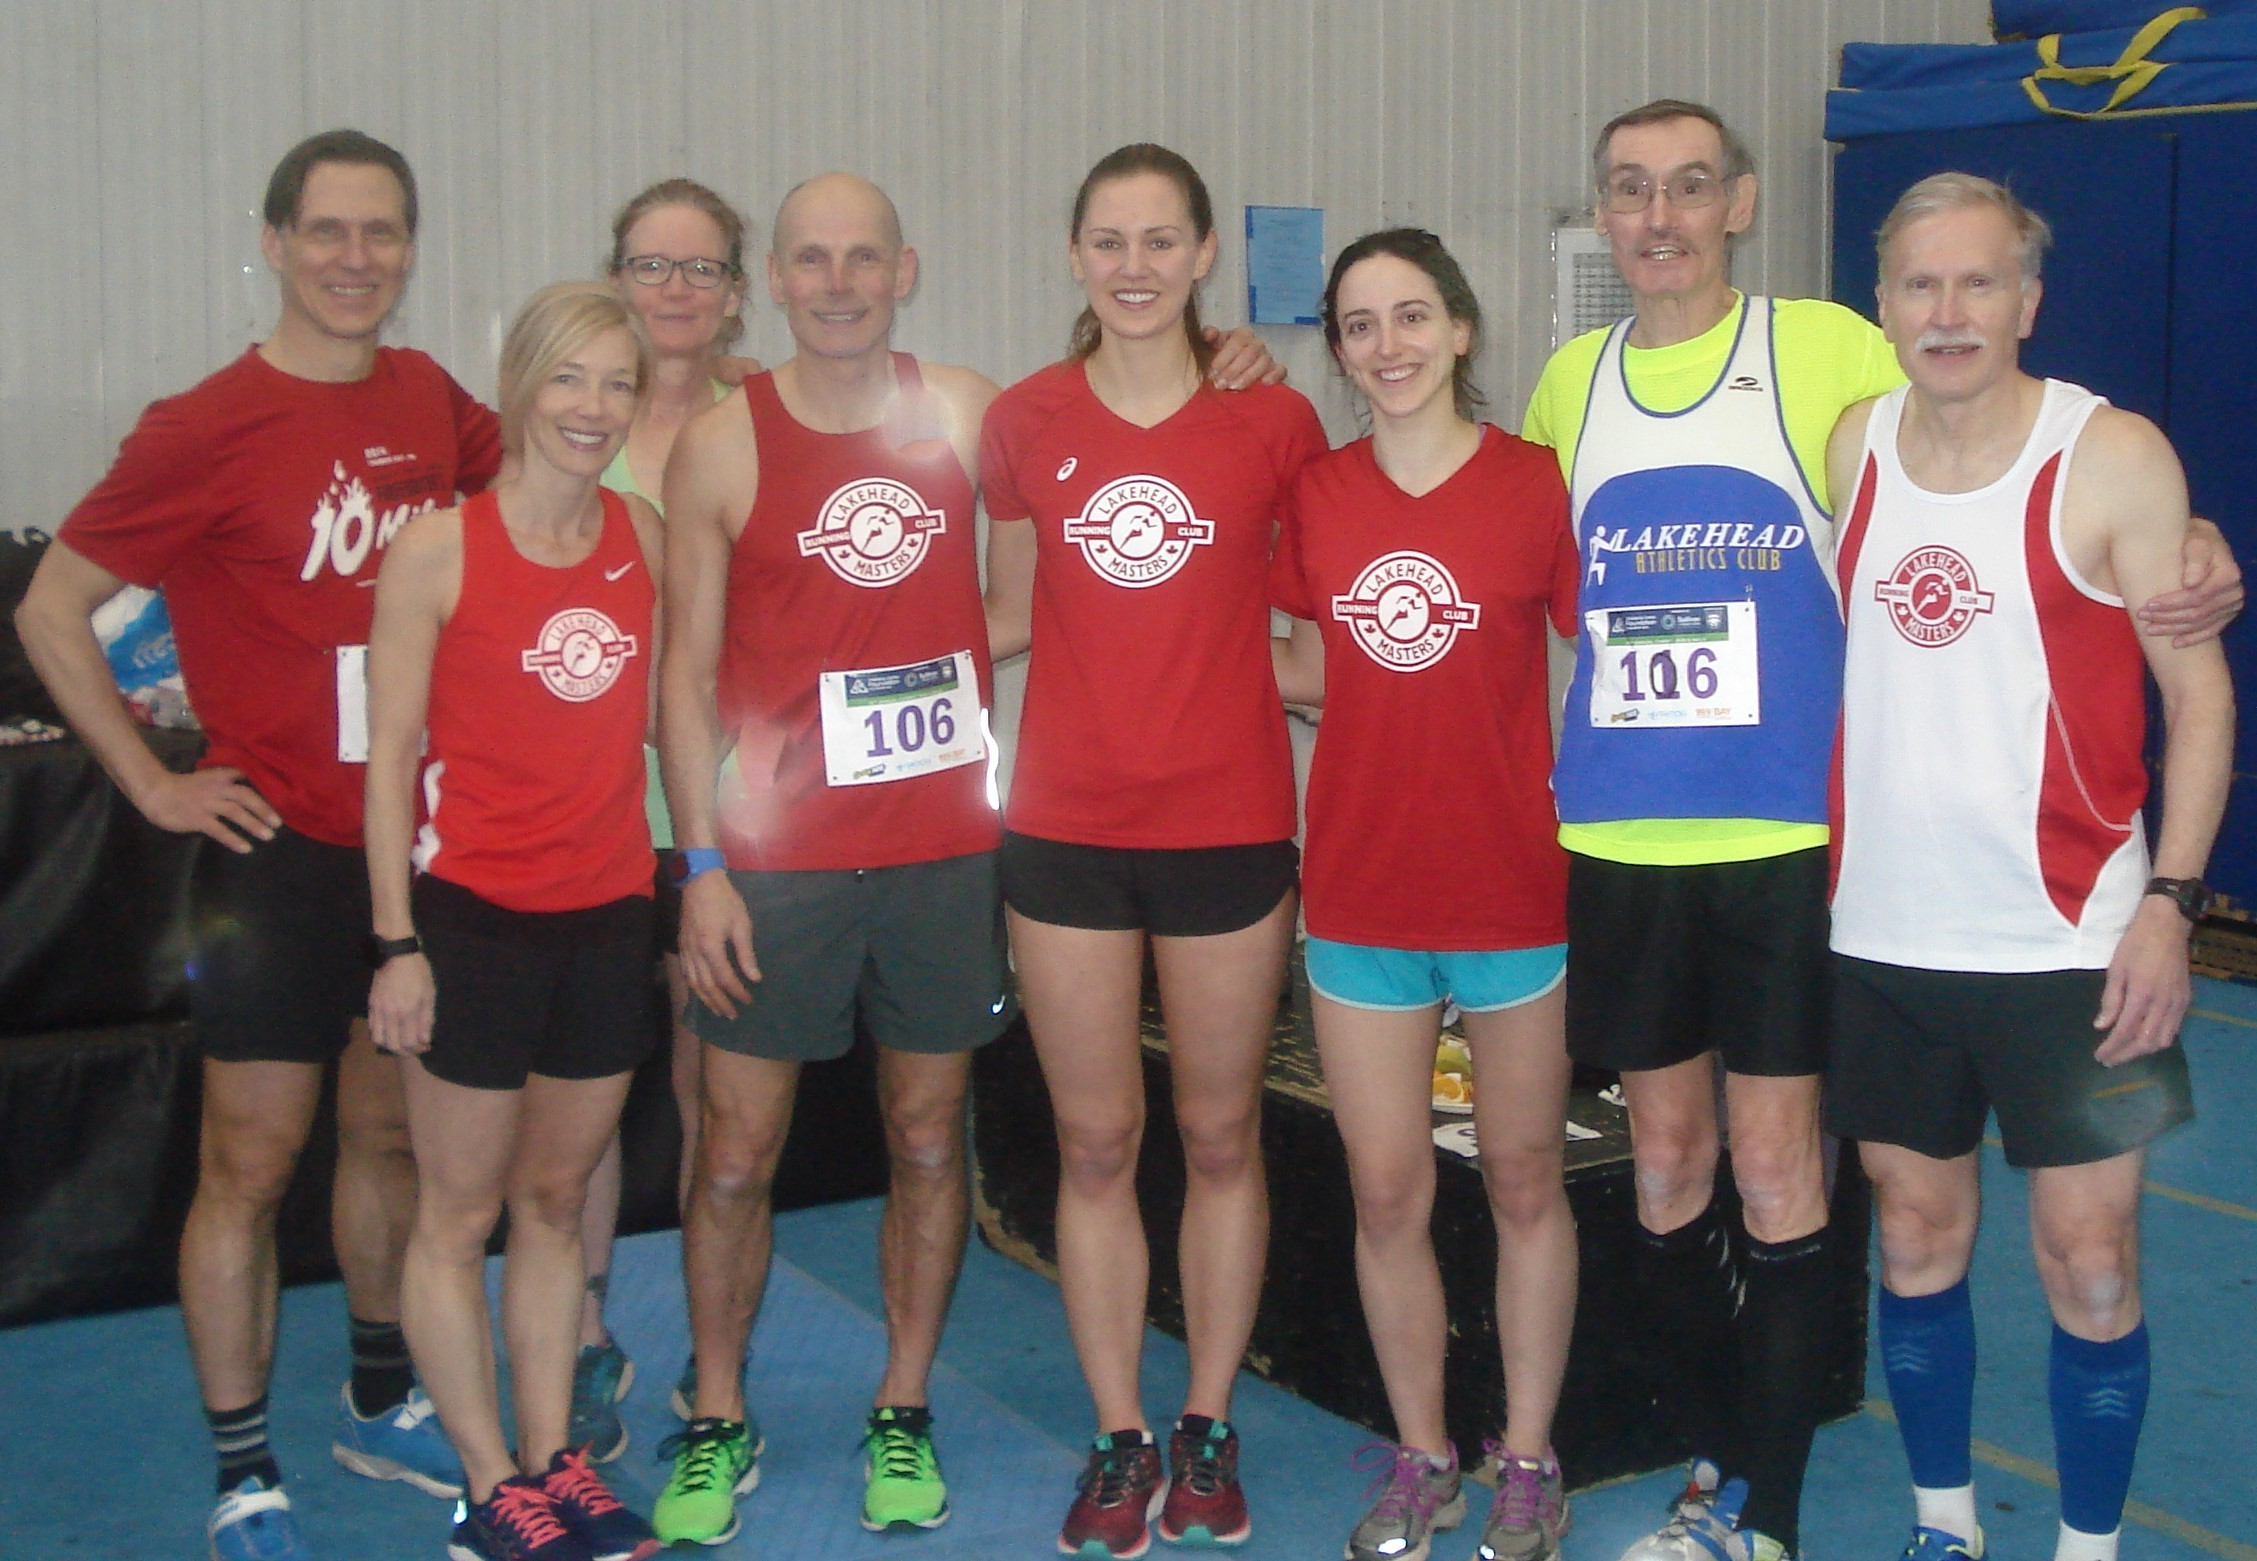 fw run relay team fe 19